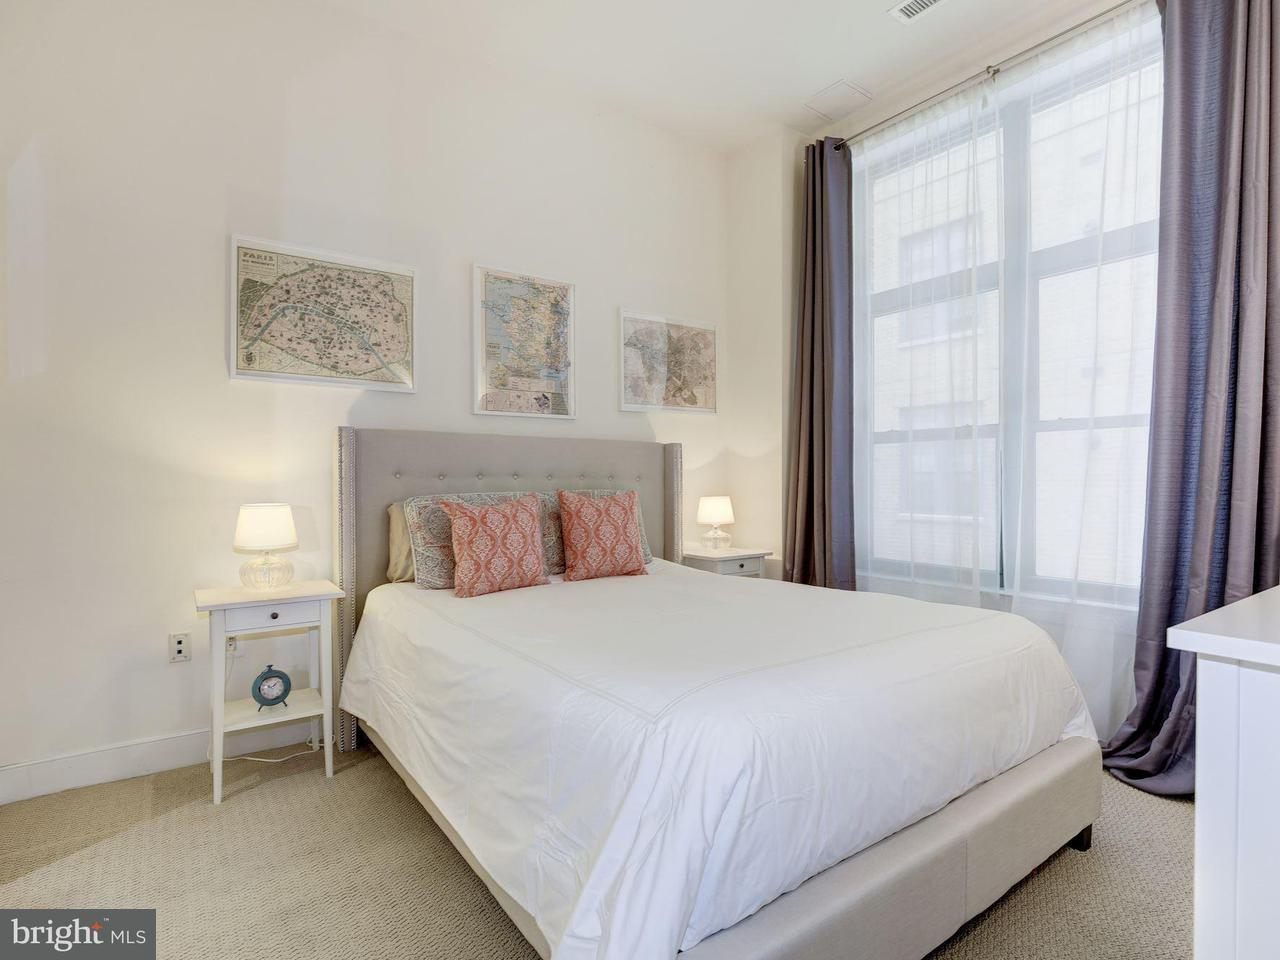 Additional photo for property listing at 2425 L St Nw #217 2425 L St Nw #217 Washington, コロンビア特別区 20037 アメリカ合衆国